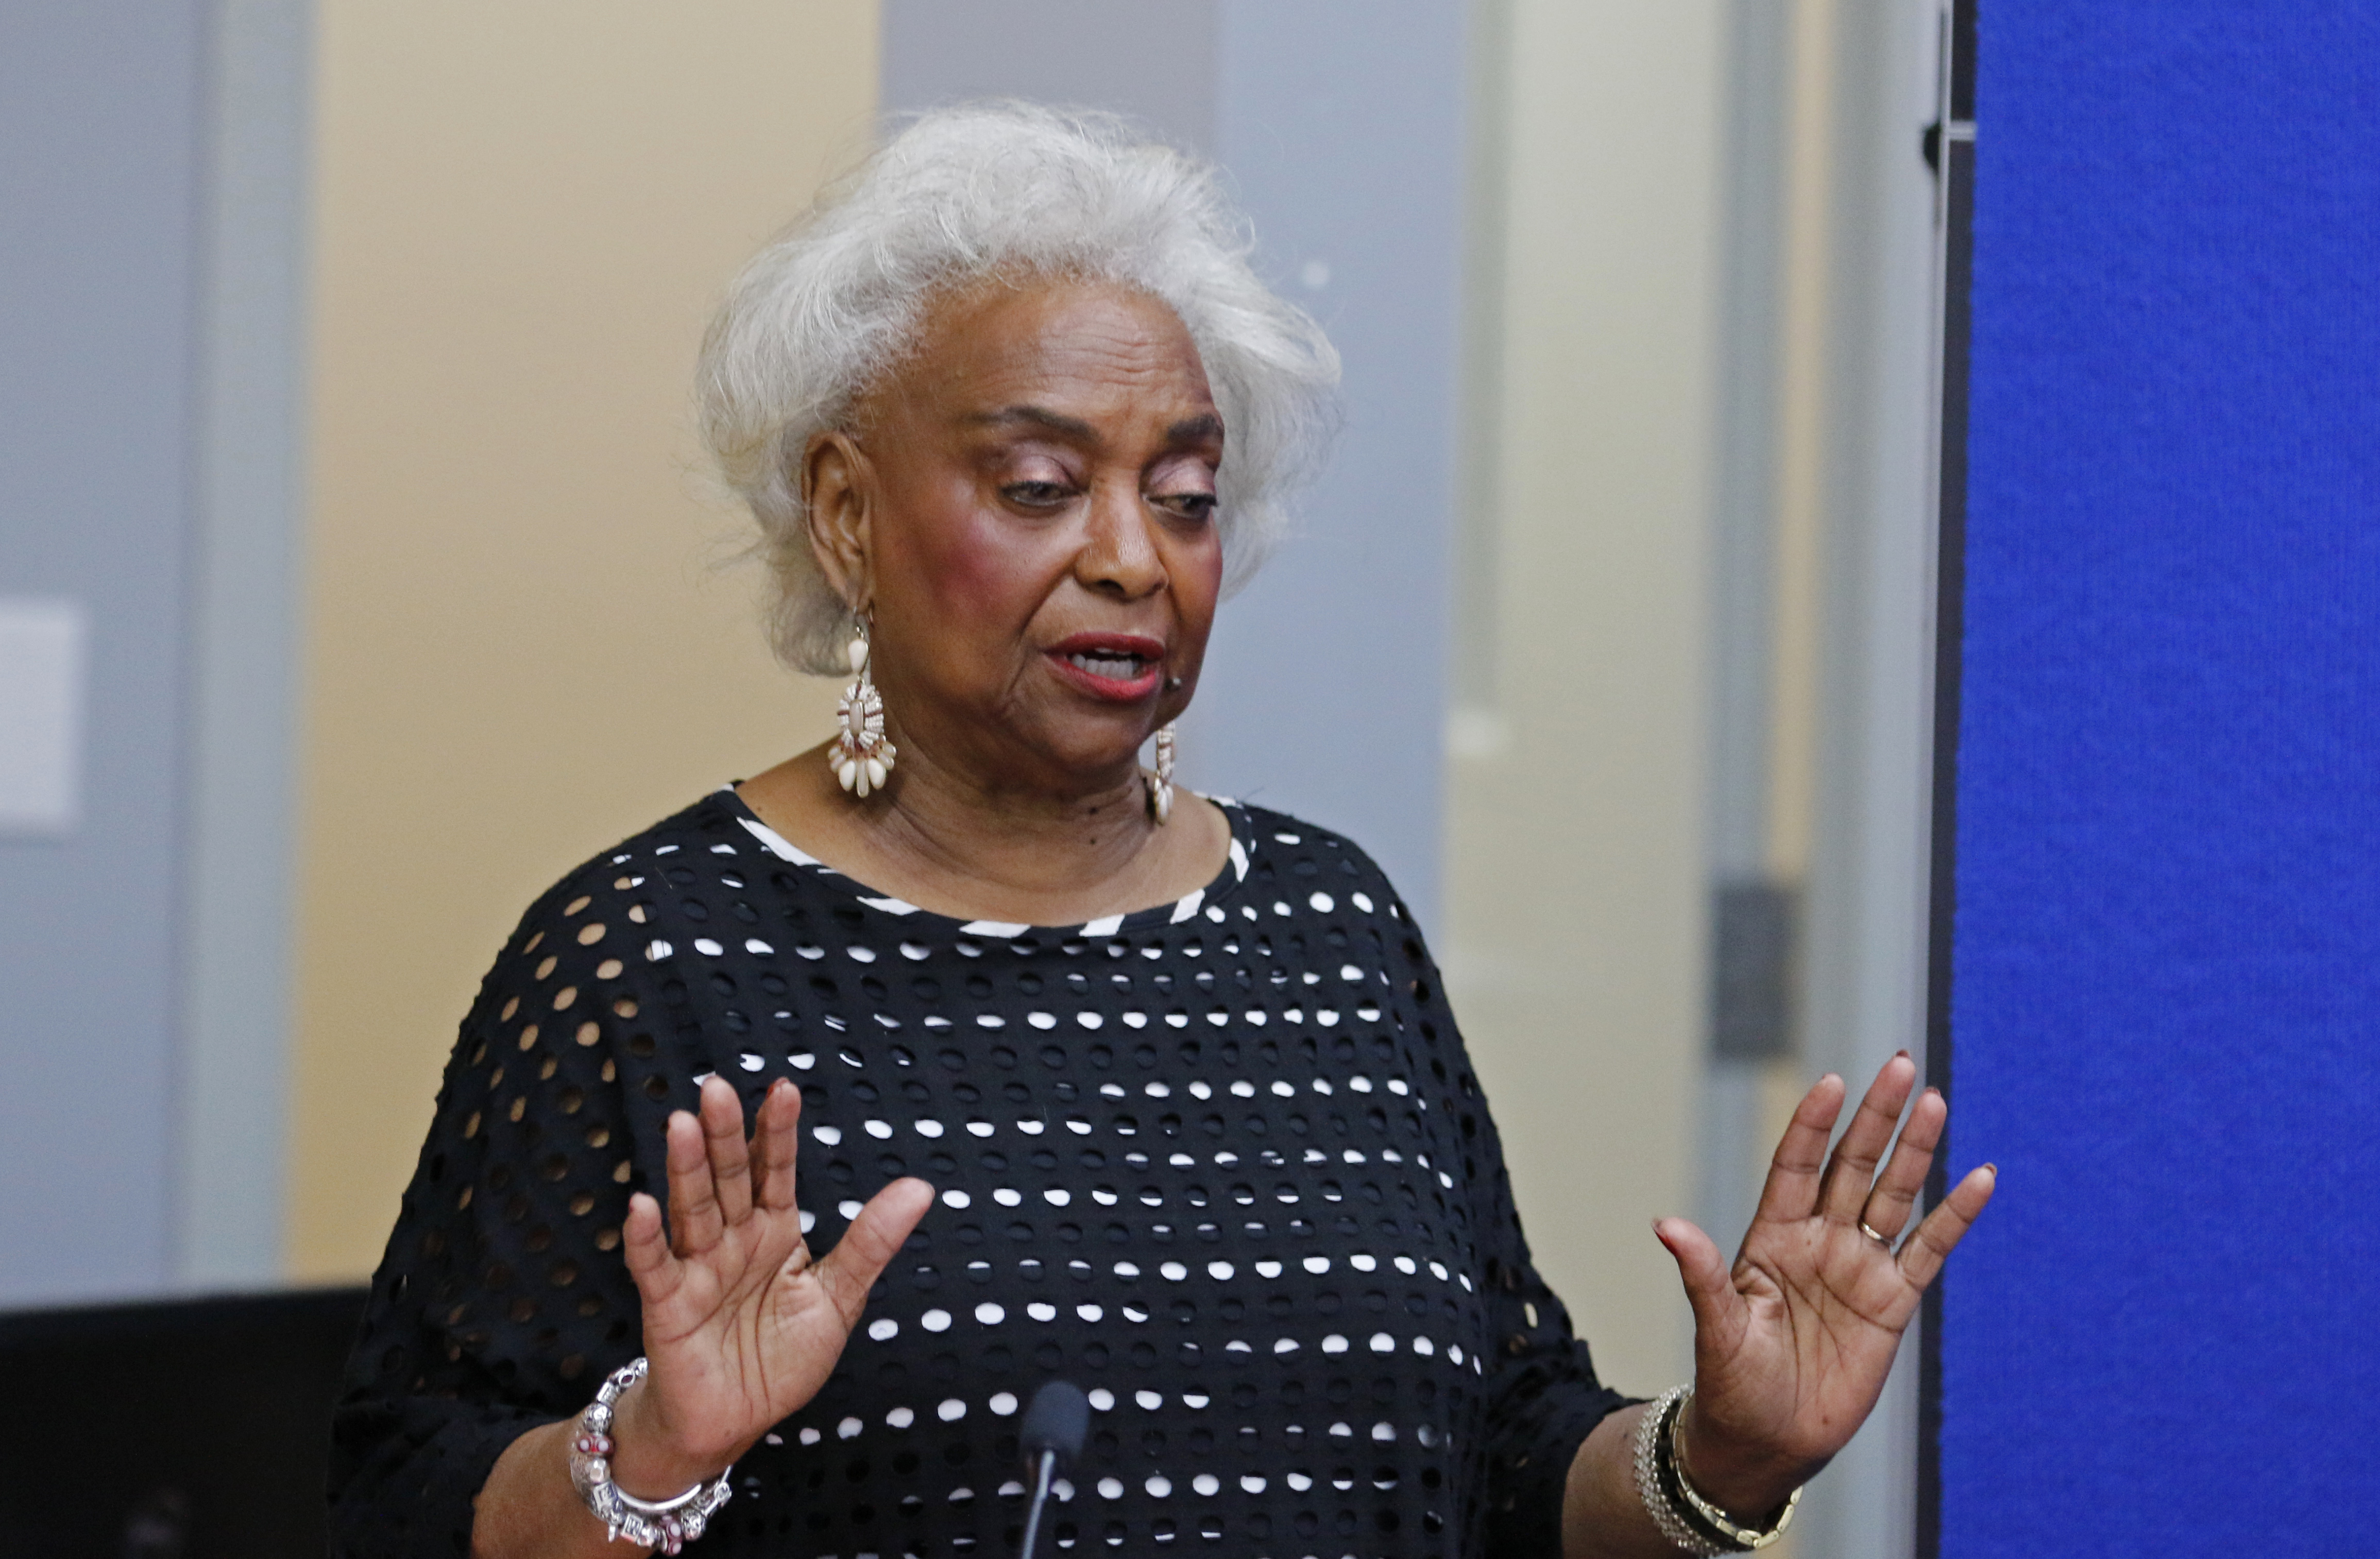 LAUDERHILL, FL - NOVEMBER 10: Dr. Brenda Snipes, Broward County Supervisor of Elections, makes a statement during a canvassing board meeting on November 10, 2018 in Lauderhill, Florida. (Joe Skipper/Getty Images)